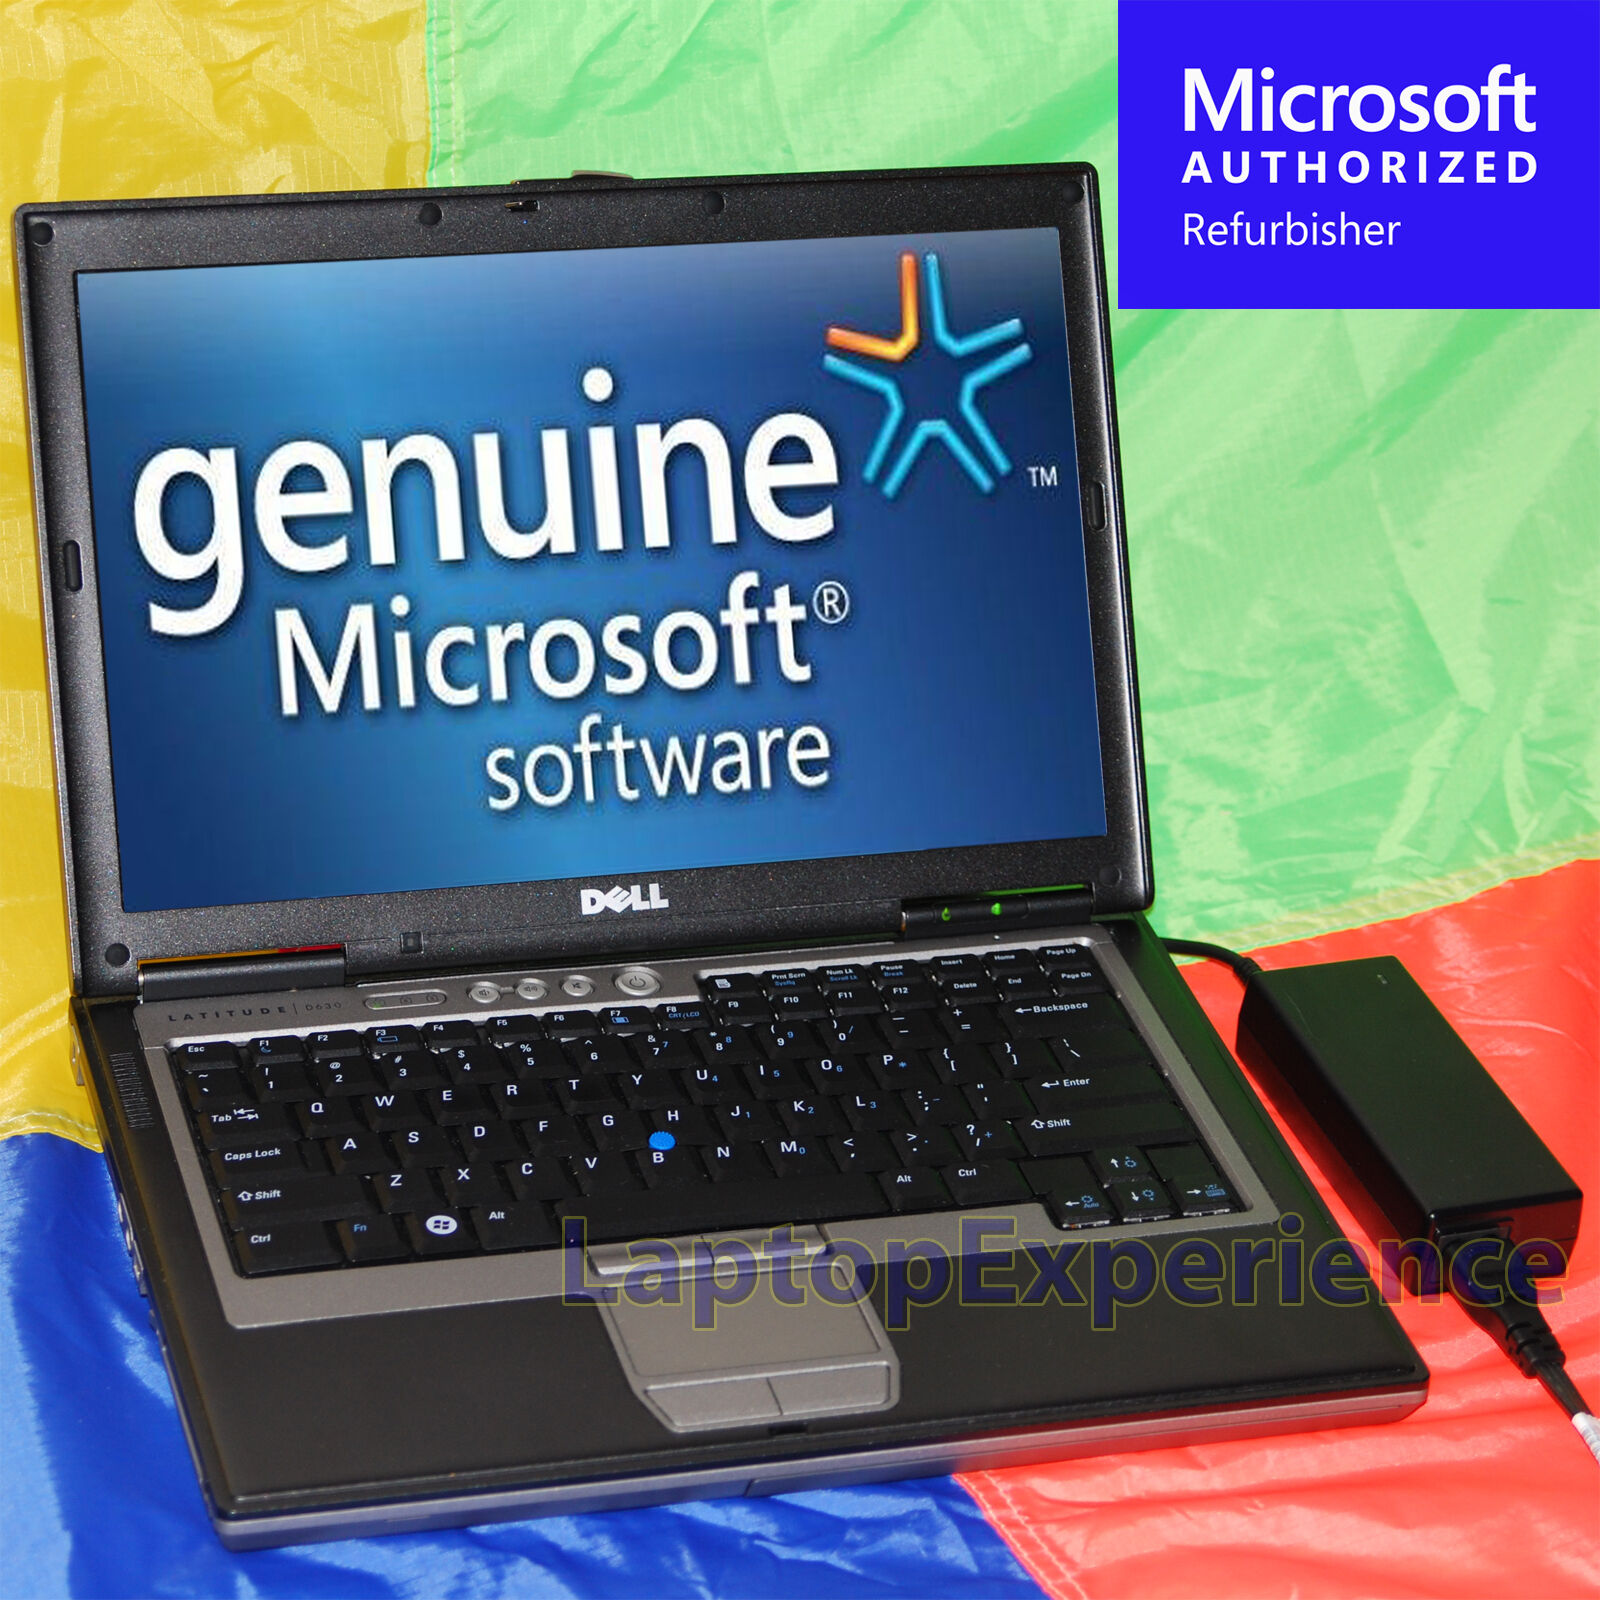 Is it necessary to purchase additional things when buying a laptop?